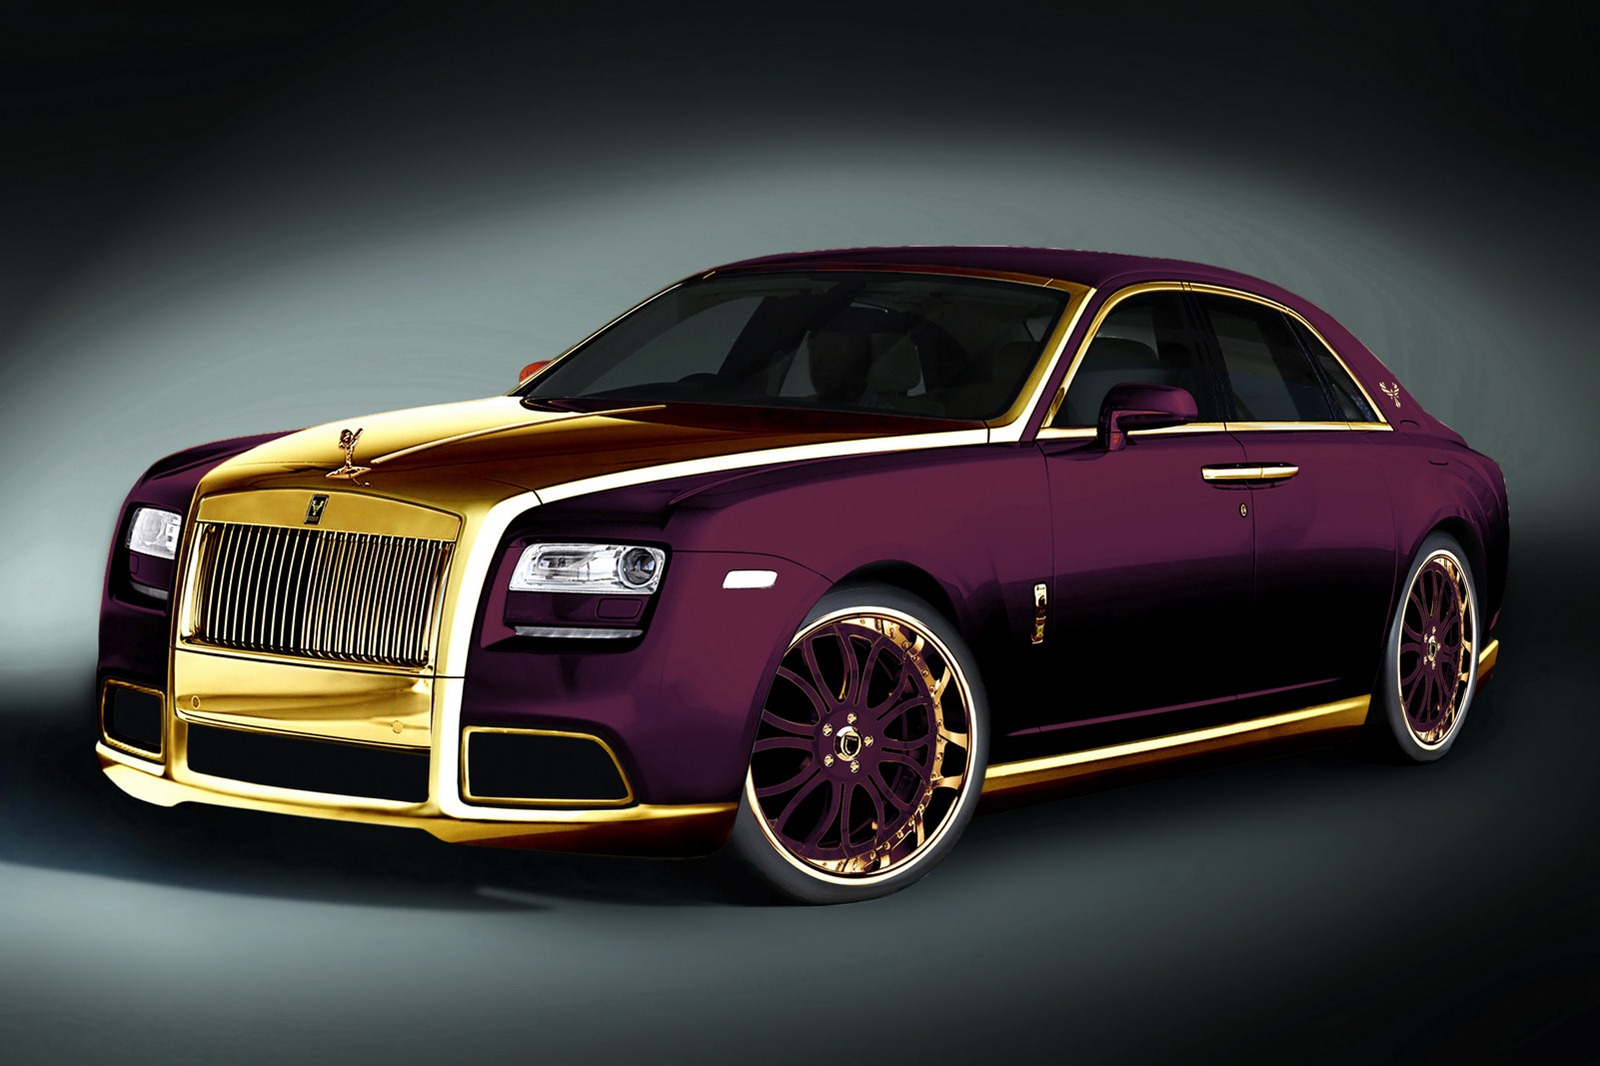 Rolls Royce Ghost Fenice Milano Purple and Gold Free Wallpaper Download Wallpaper